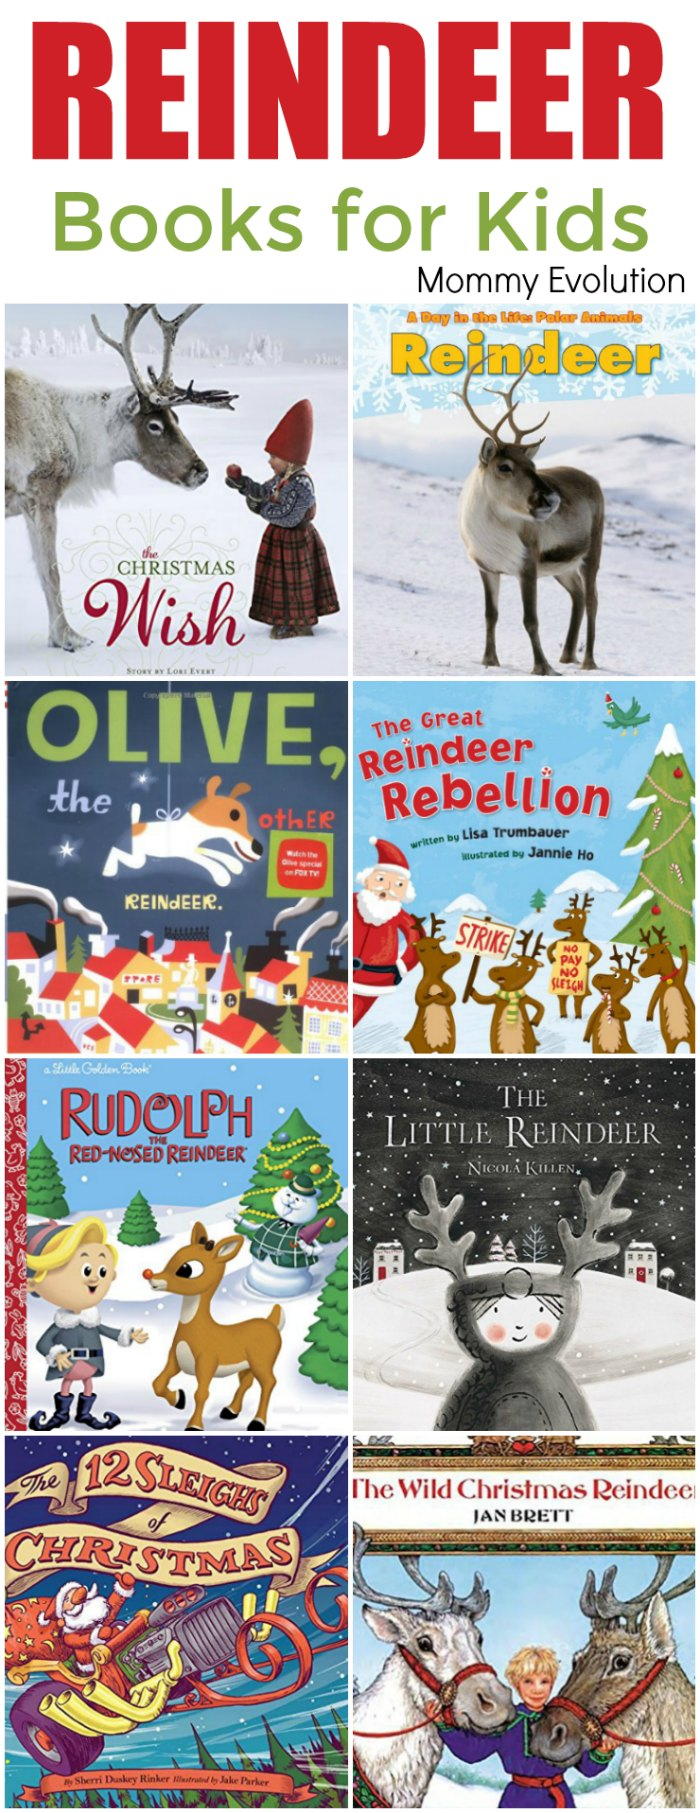 Reindeer Books for Kids - Perfect for Christmas and wintertime | Mommy Evolution. #kidlit #books #reindeer #reading